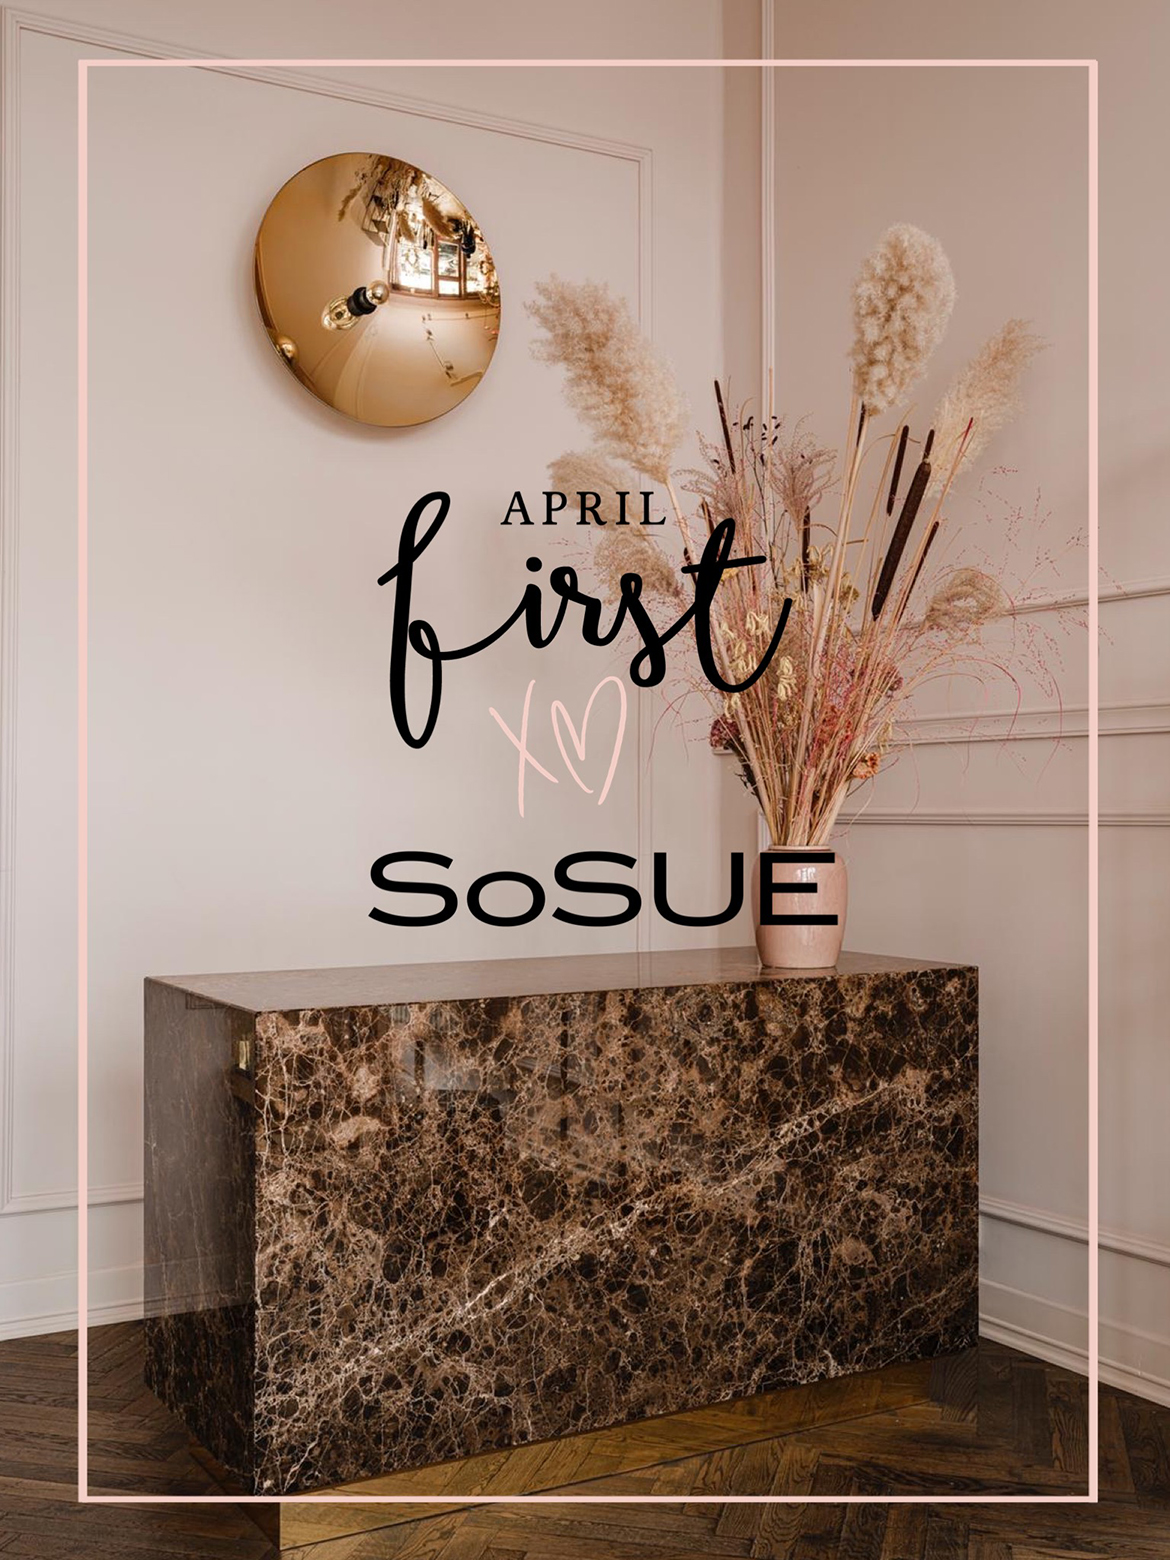 SoSUE × April First Shopping Event